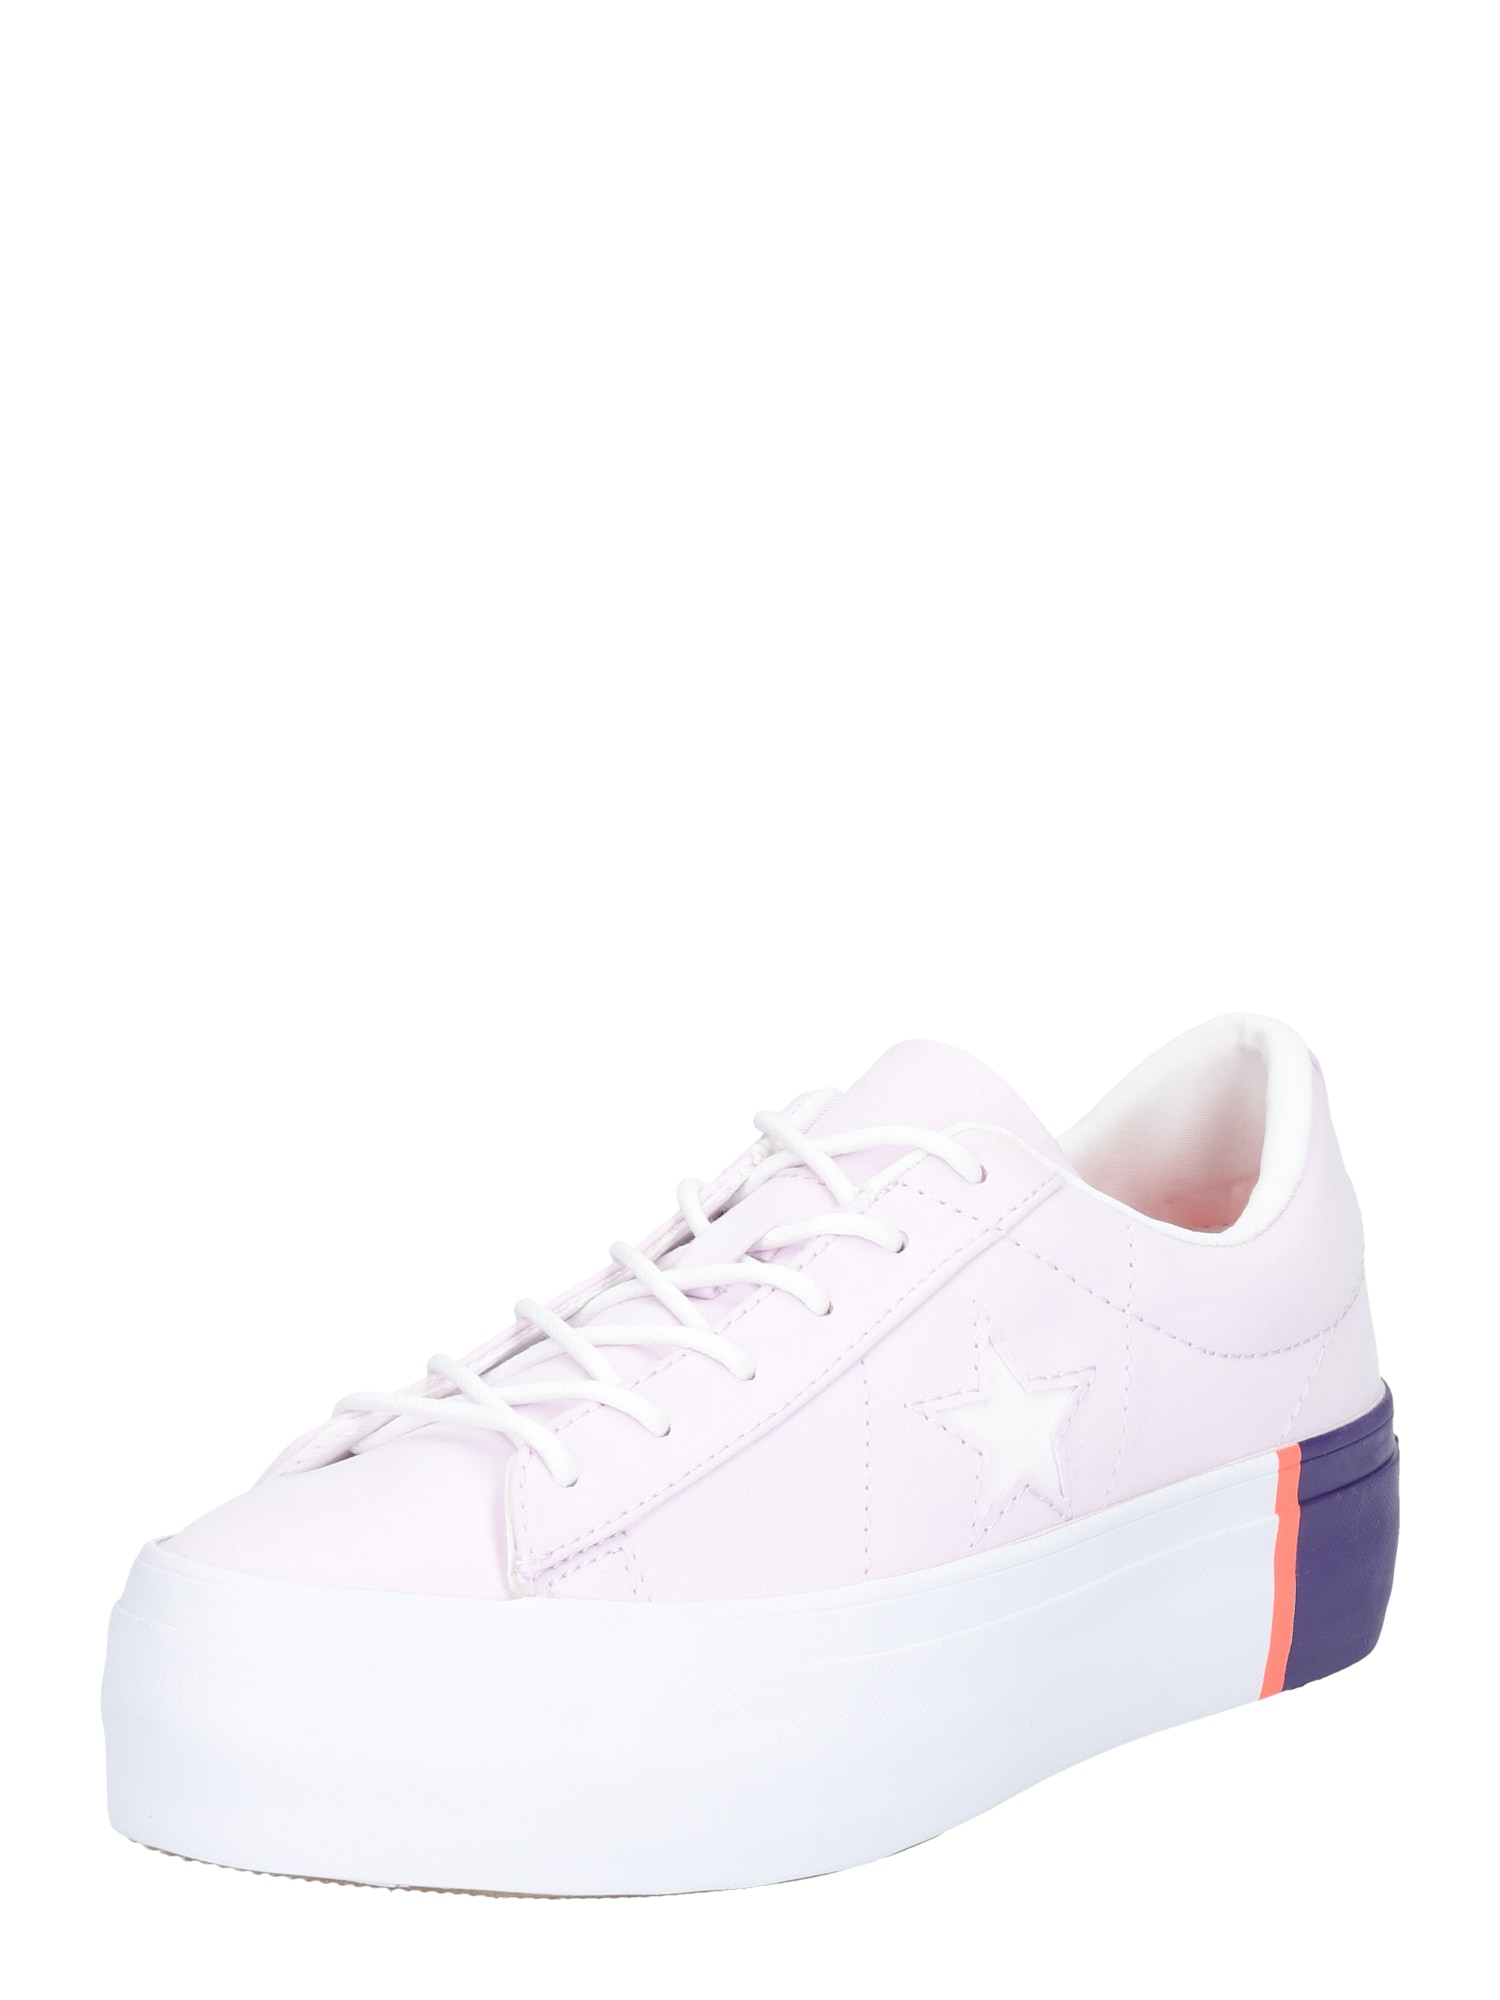 CONVERSE, Dames Sneakers laag 'ONE STAR PLATFORM - OX', pastellila / donkerlila / wit